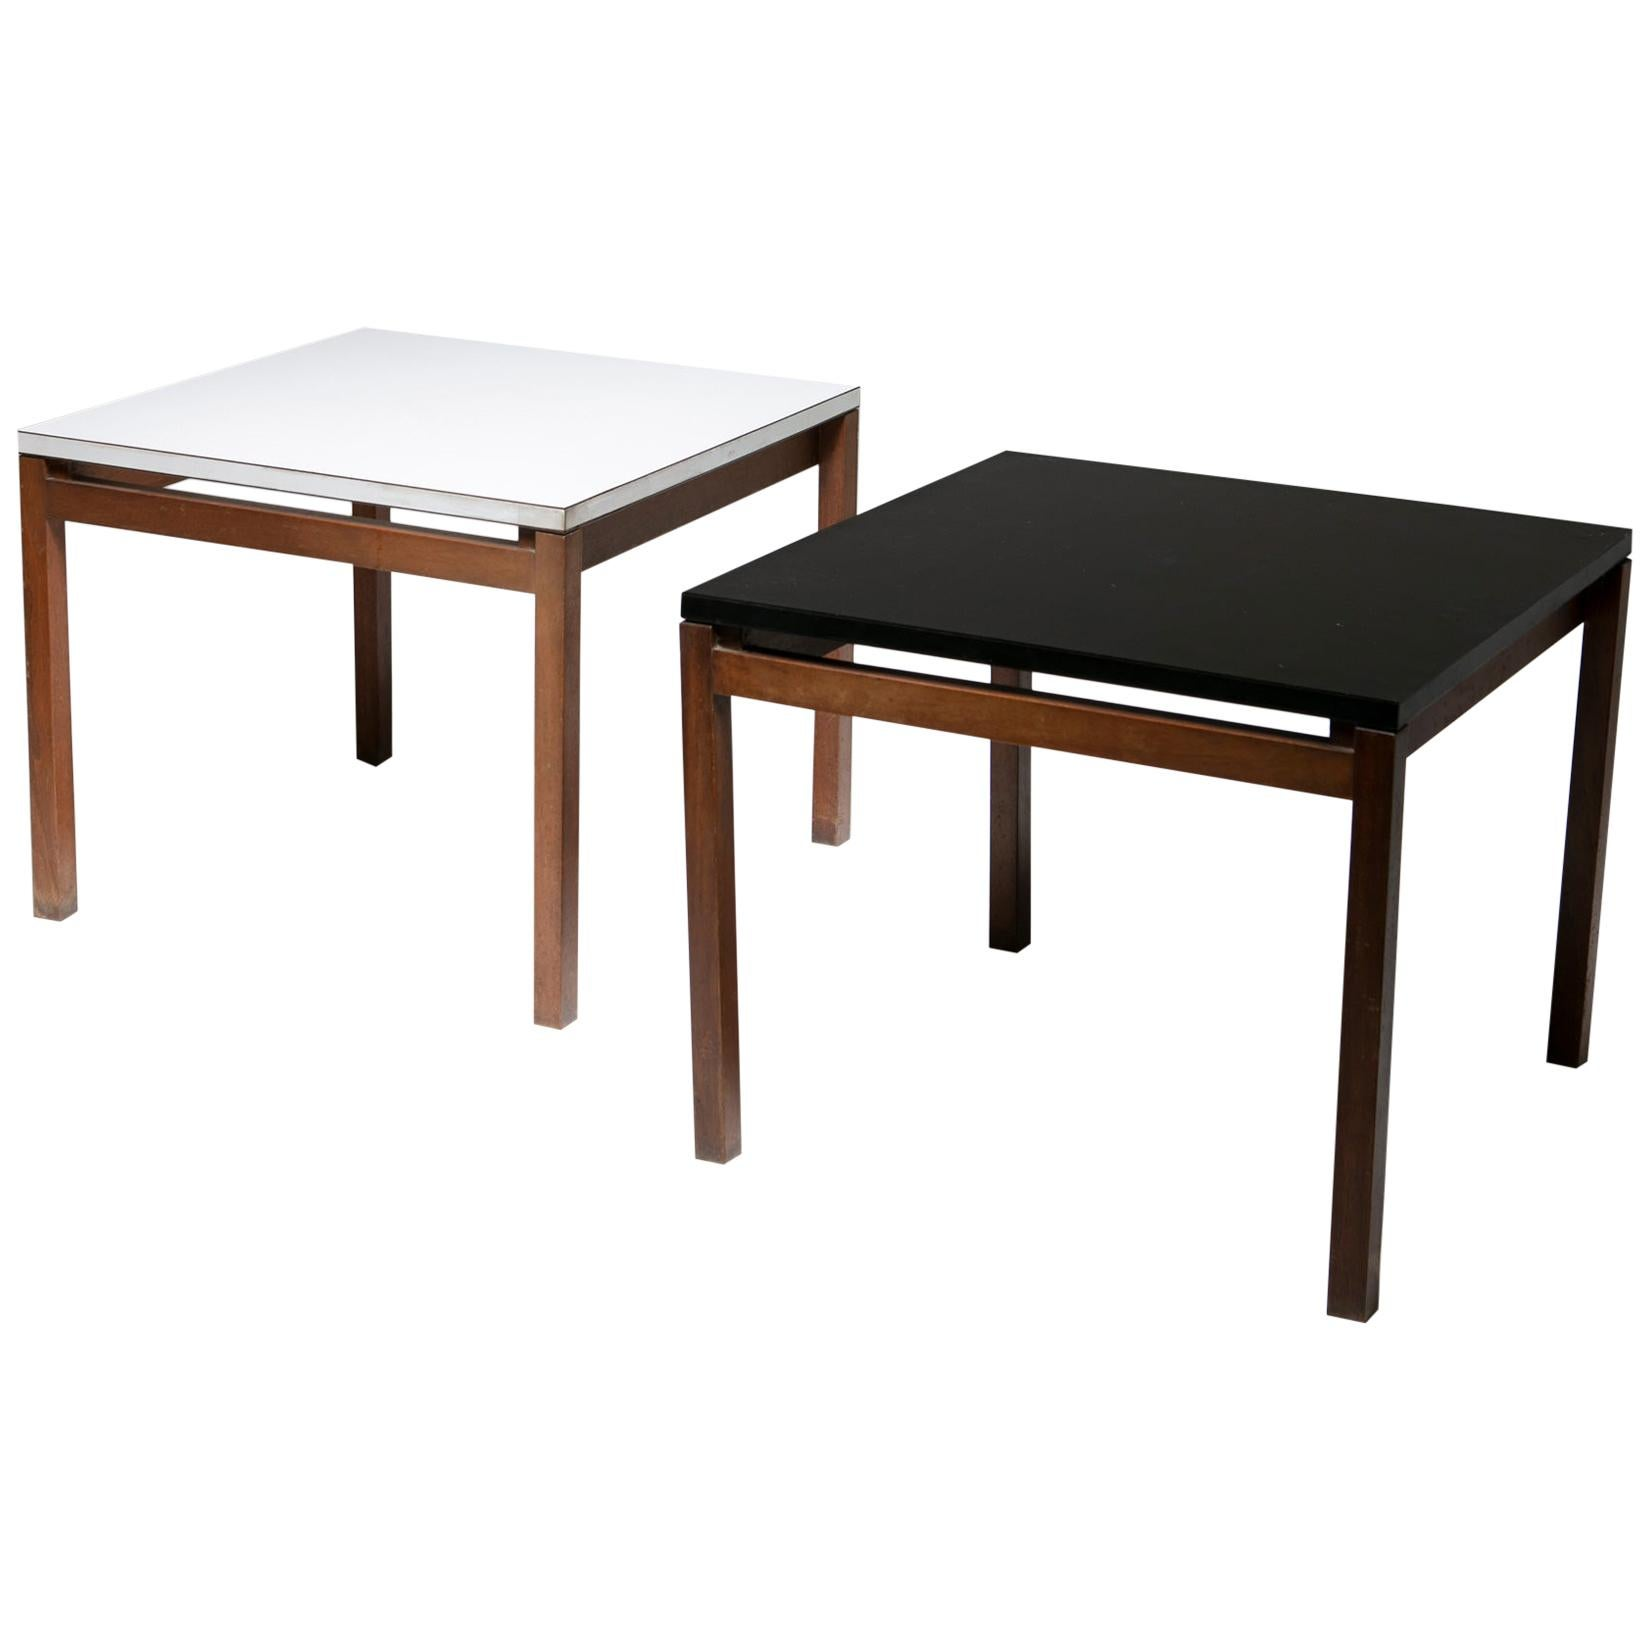 Set of Two Side Tables by Florence Knoll for Knoll